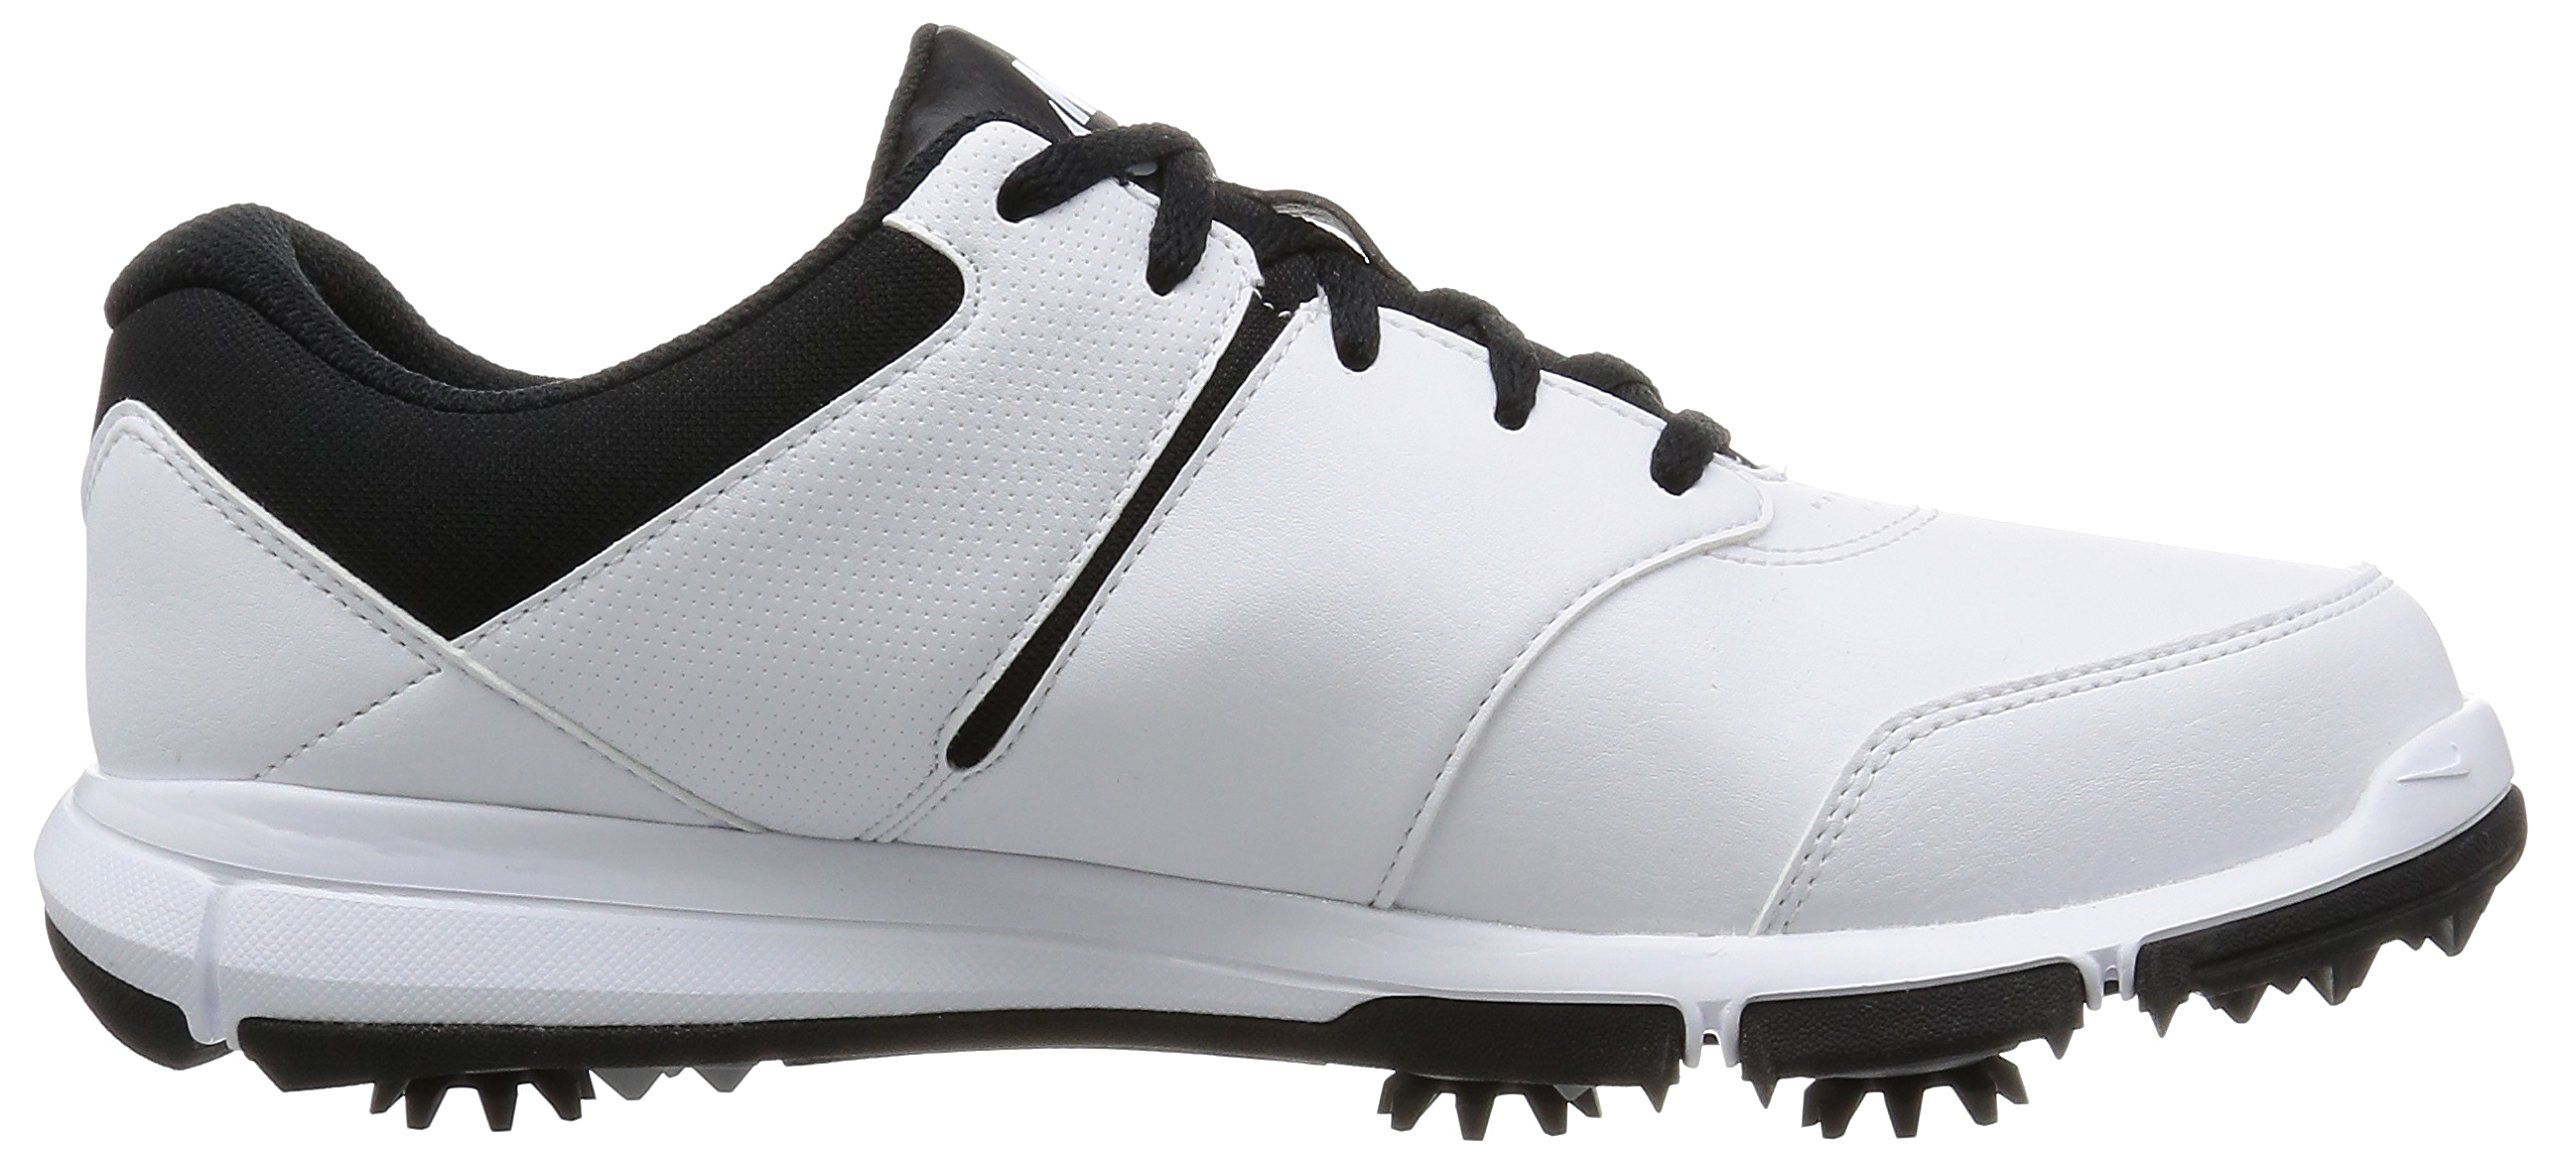 Golf Shoes     NIKE Durasport 4 Golf Shoes 10 White Metallic Silver     Learn more testimonials of the item by going to the web link on the picture. c2516c781